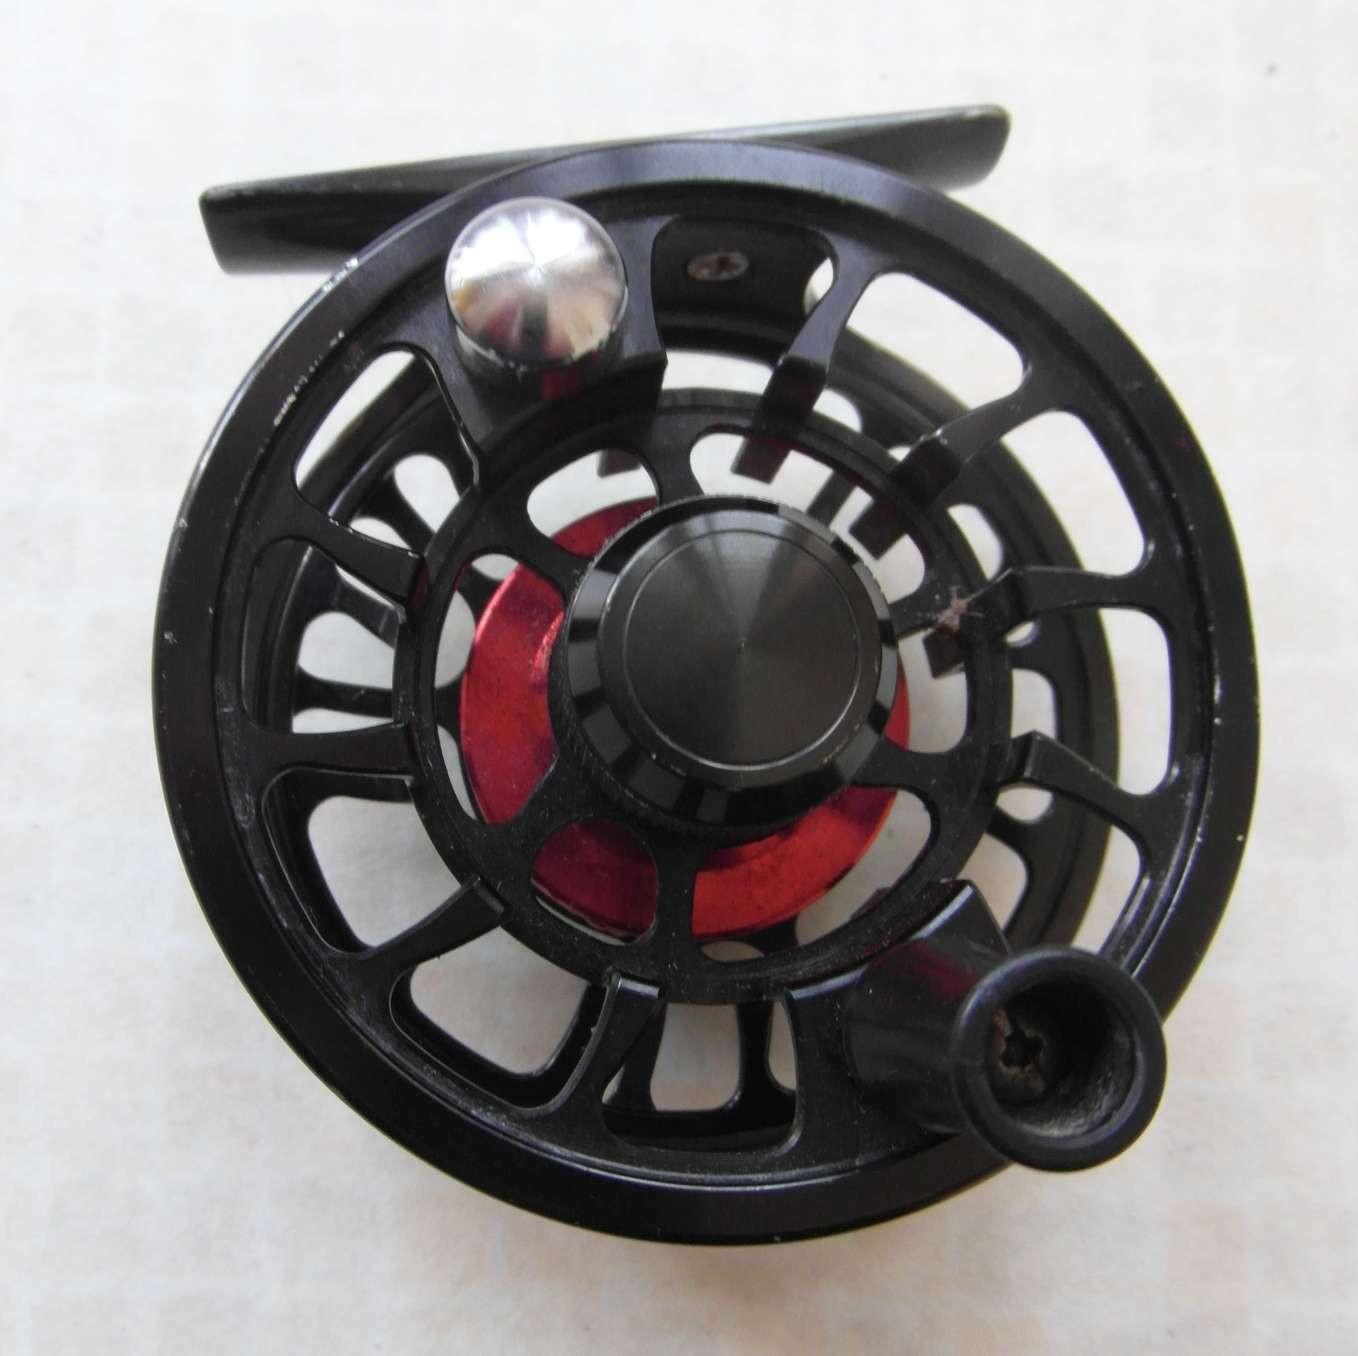 TROUTWATCH SAF 3 4 LINE WEIGHT FLY REEL